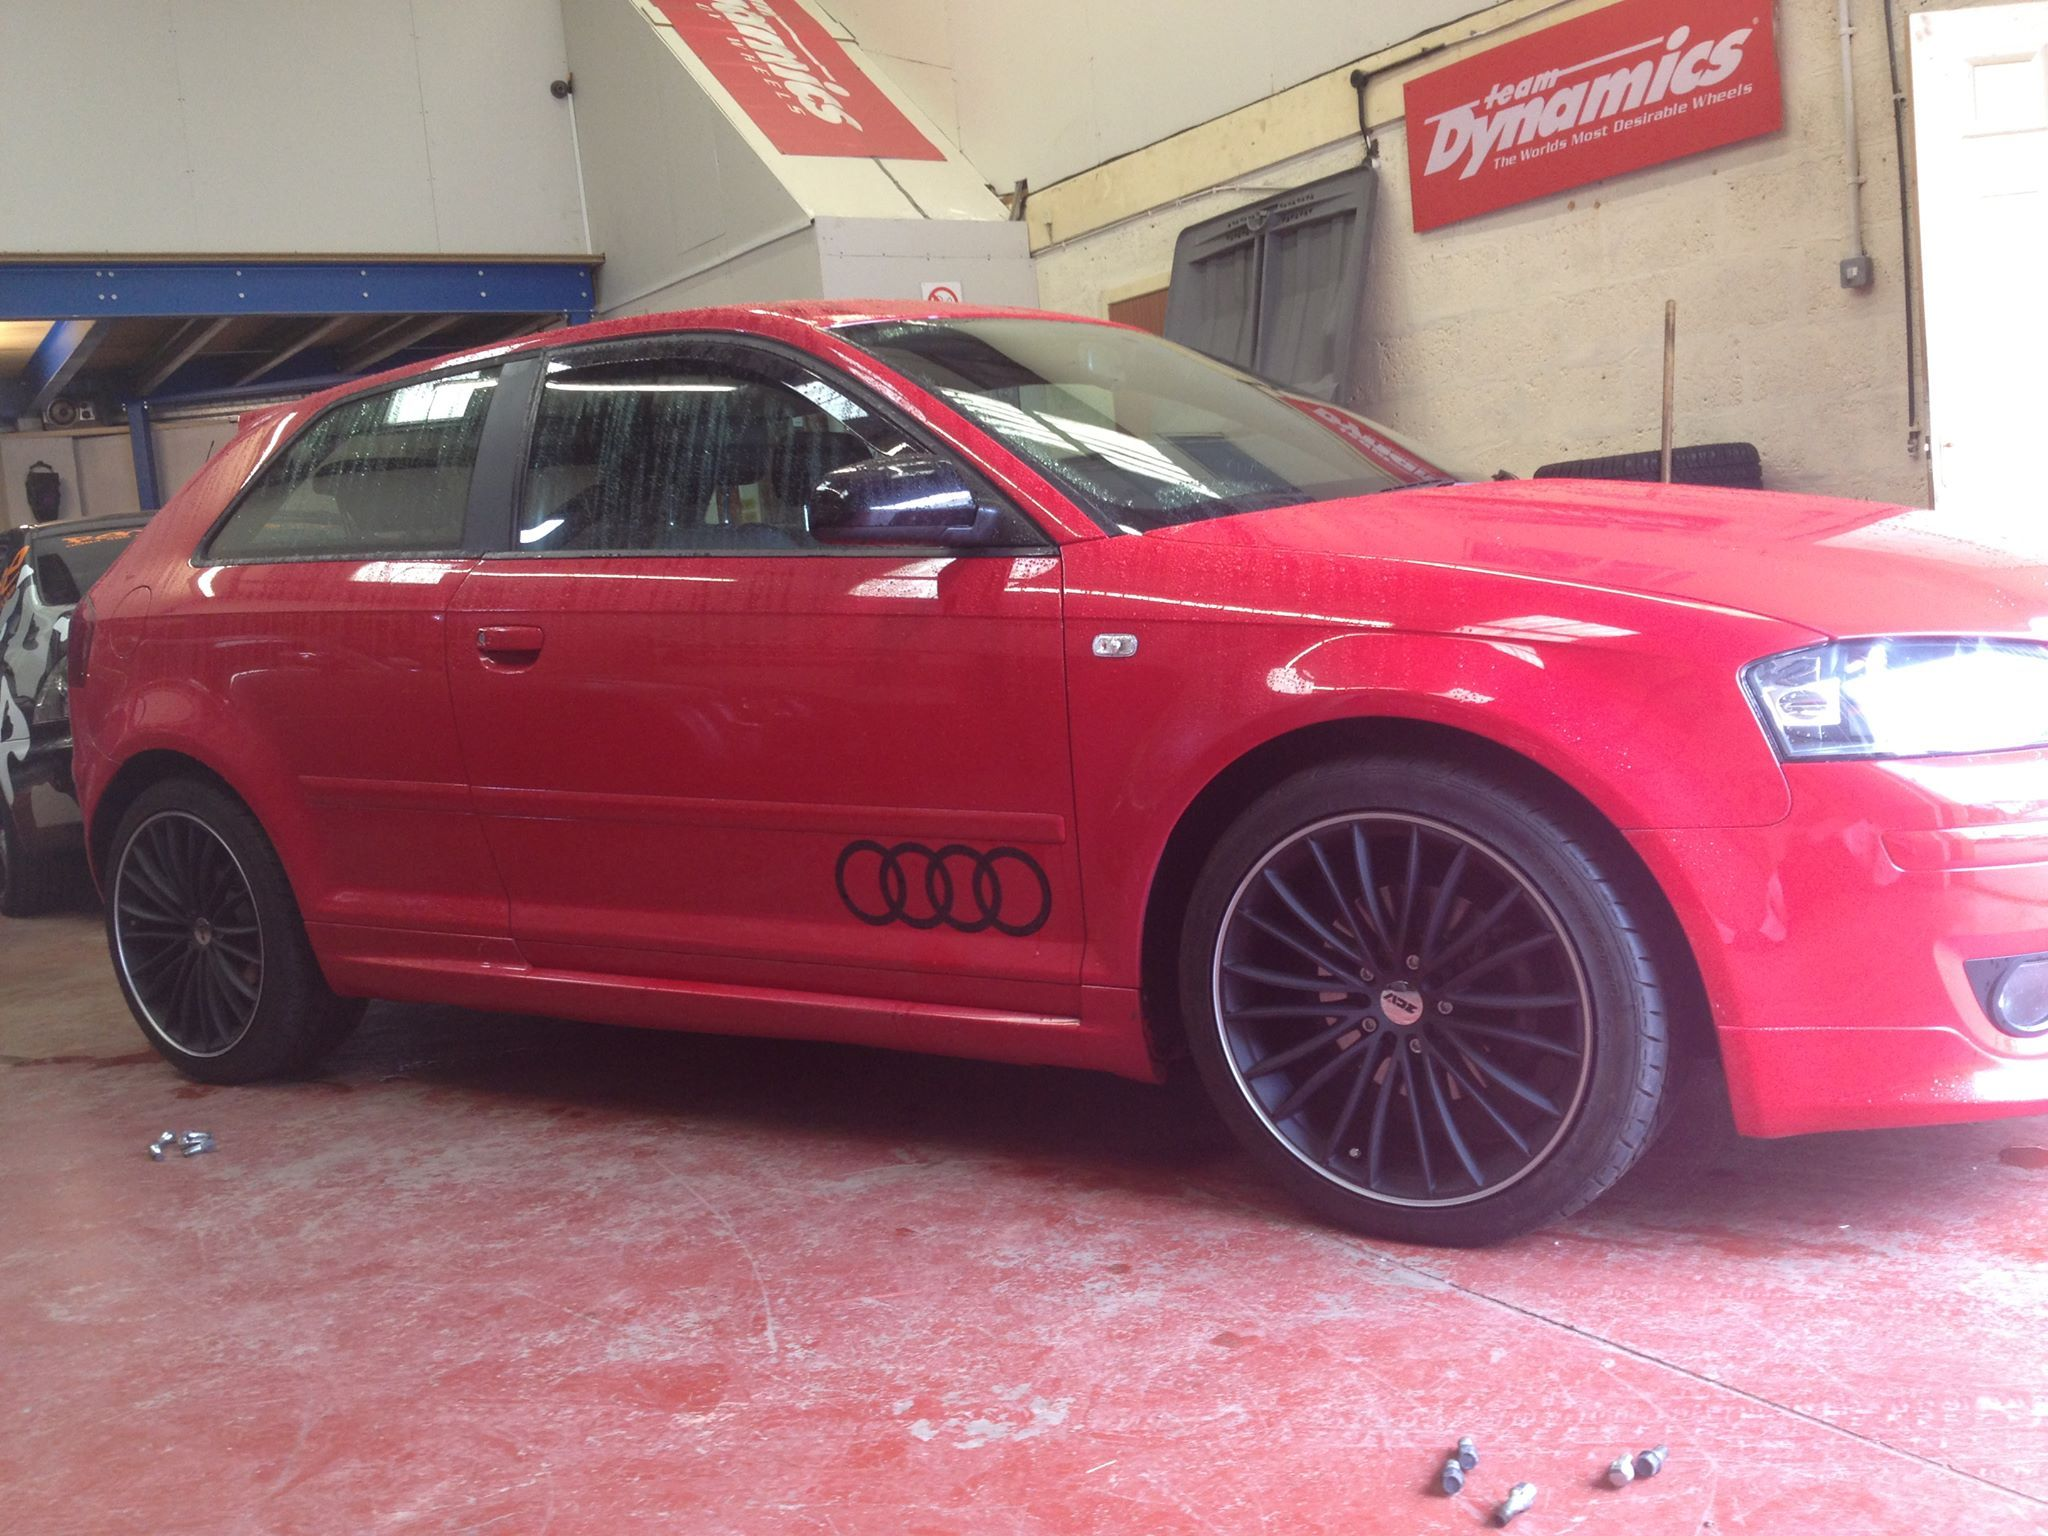 ZCW Snoop on A3 #cars #alloy #wheels #rims #tires #tyres http://www.turrifftyres.co.uk/alloywheels